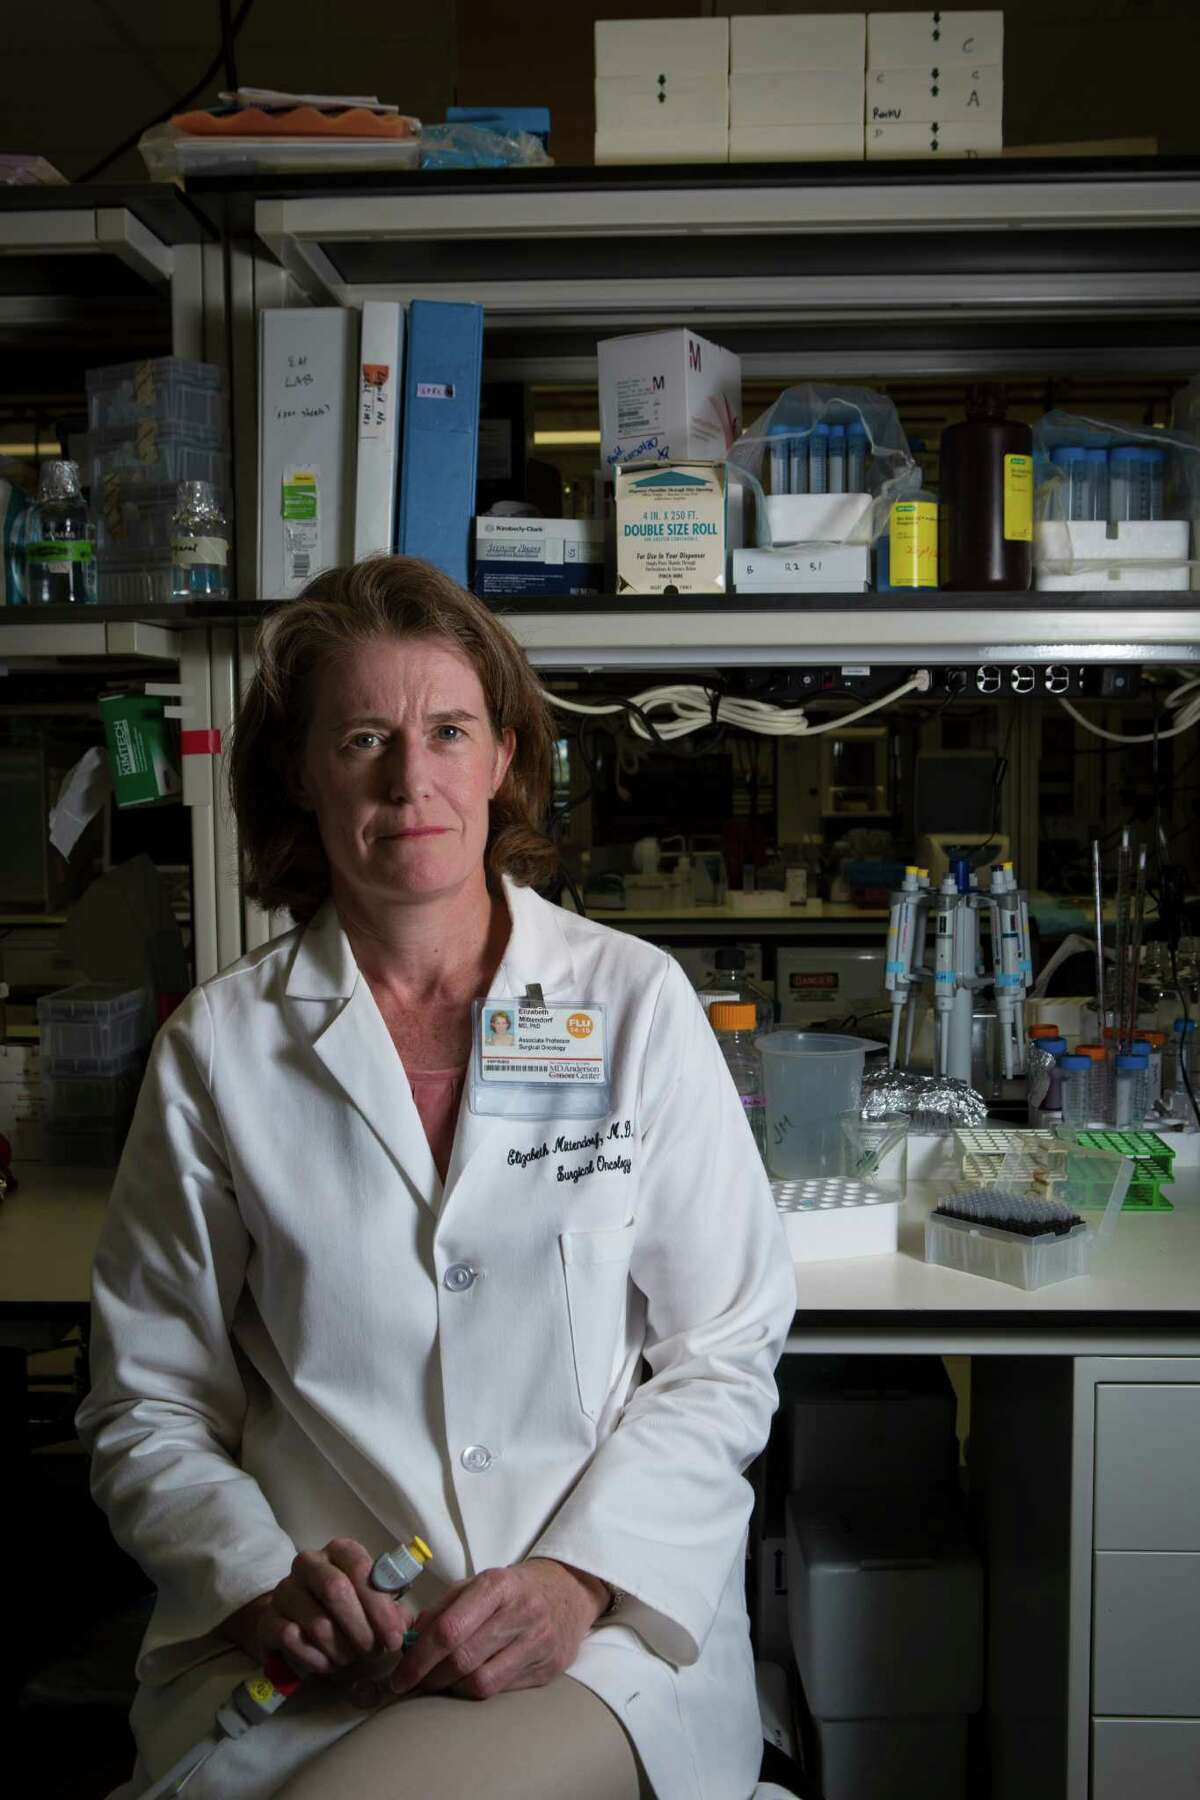 Dr. Elizabeth Mittendorf is an associate professor in the Department of Surgical Oncology at the University of Texas MD Anderson Cancer Center, focusing efforts on the study of breast cancer with a specific interest in breast cancer immunotherapy. Wednesday, Sept. 16, 2015, in Houston. ( Marie D. De Jesus / Houston Chronicle )